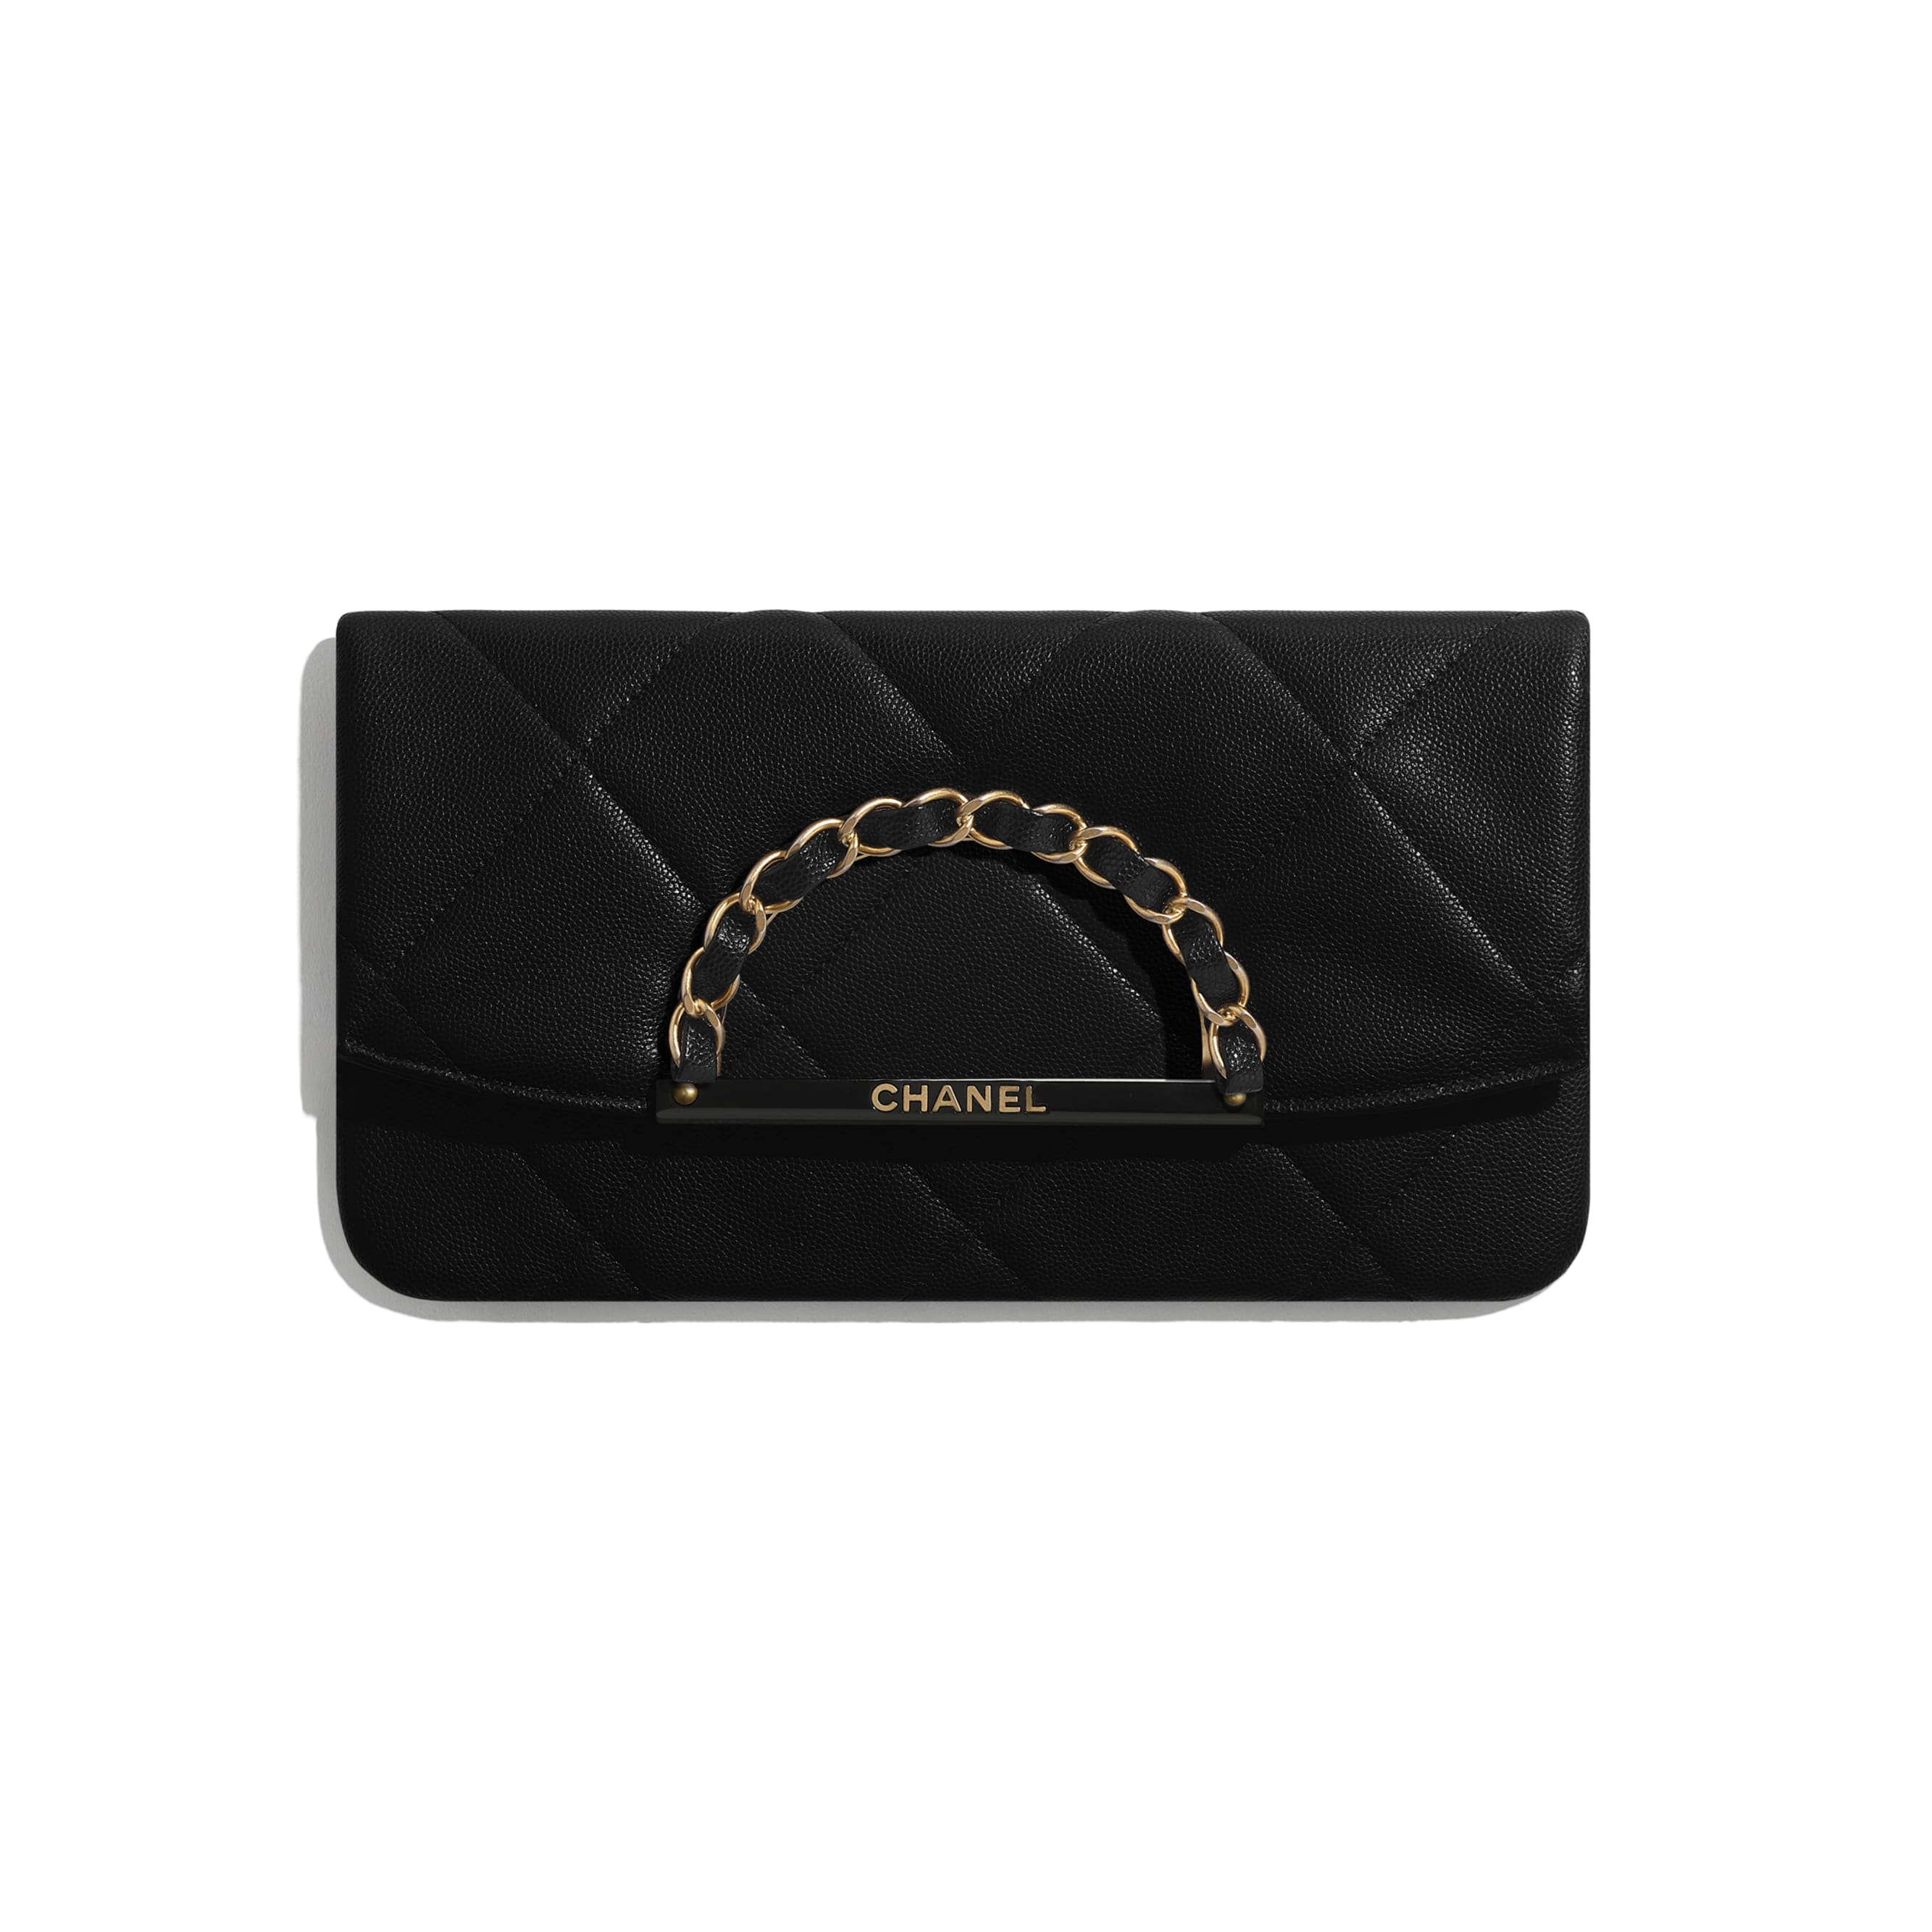 Clutch - Black - Grained Calfskin & Gold-Tone Metal - CHANEL - Default view - see standard sized version